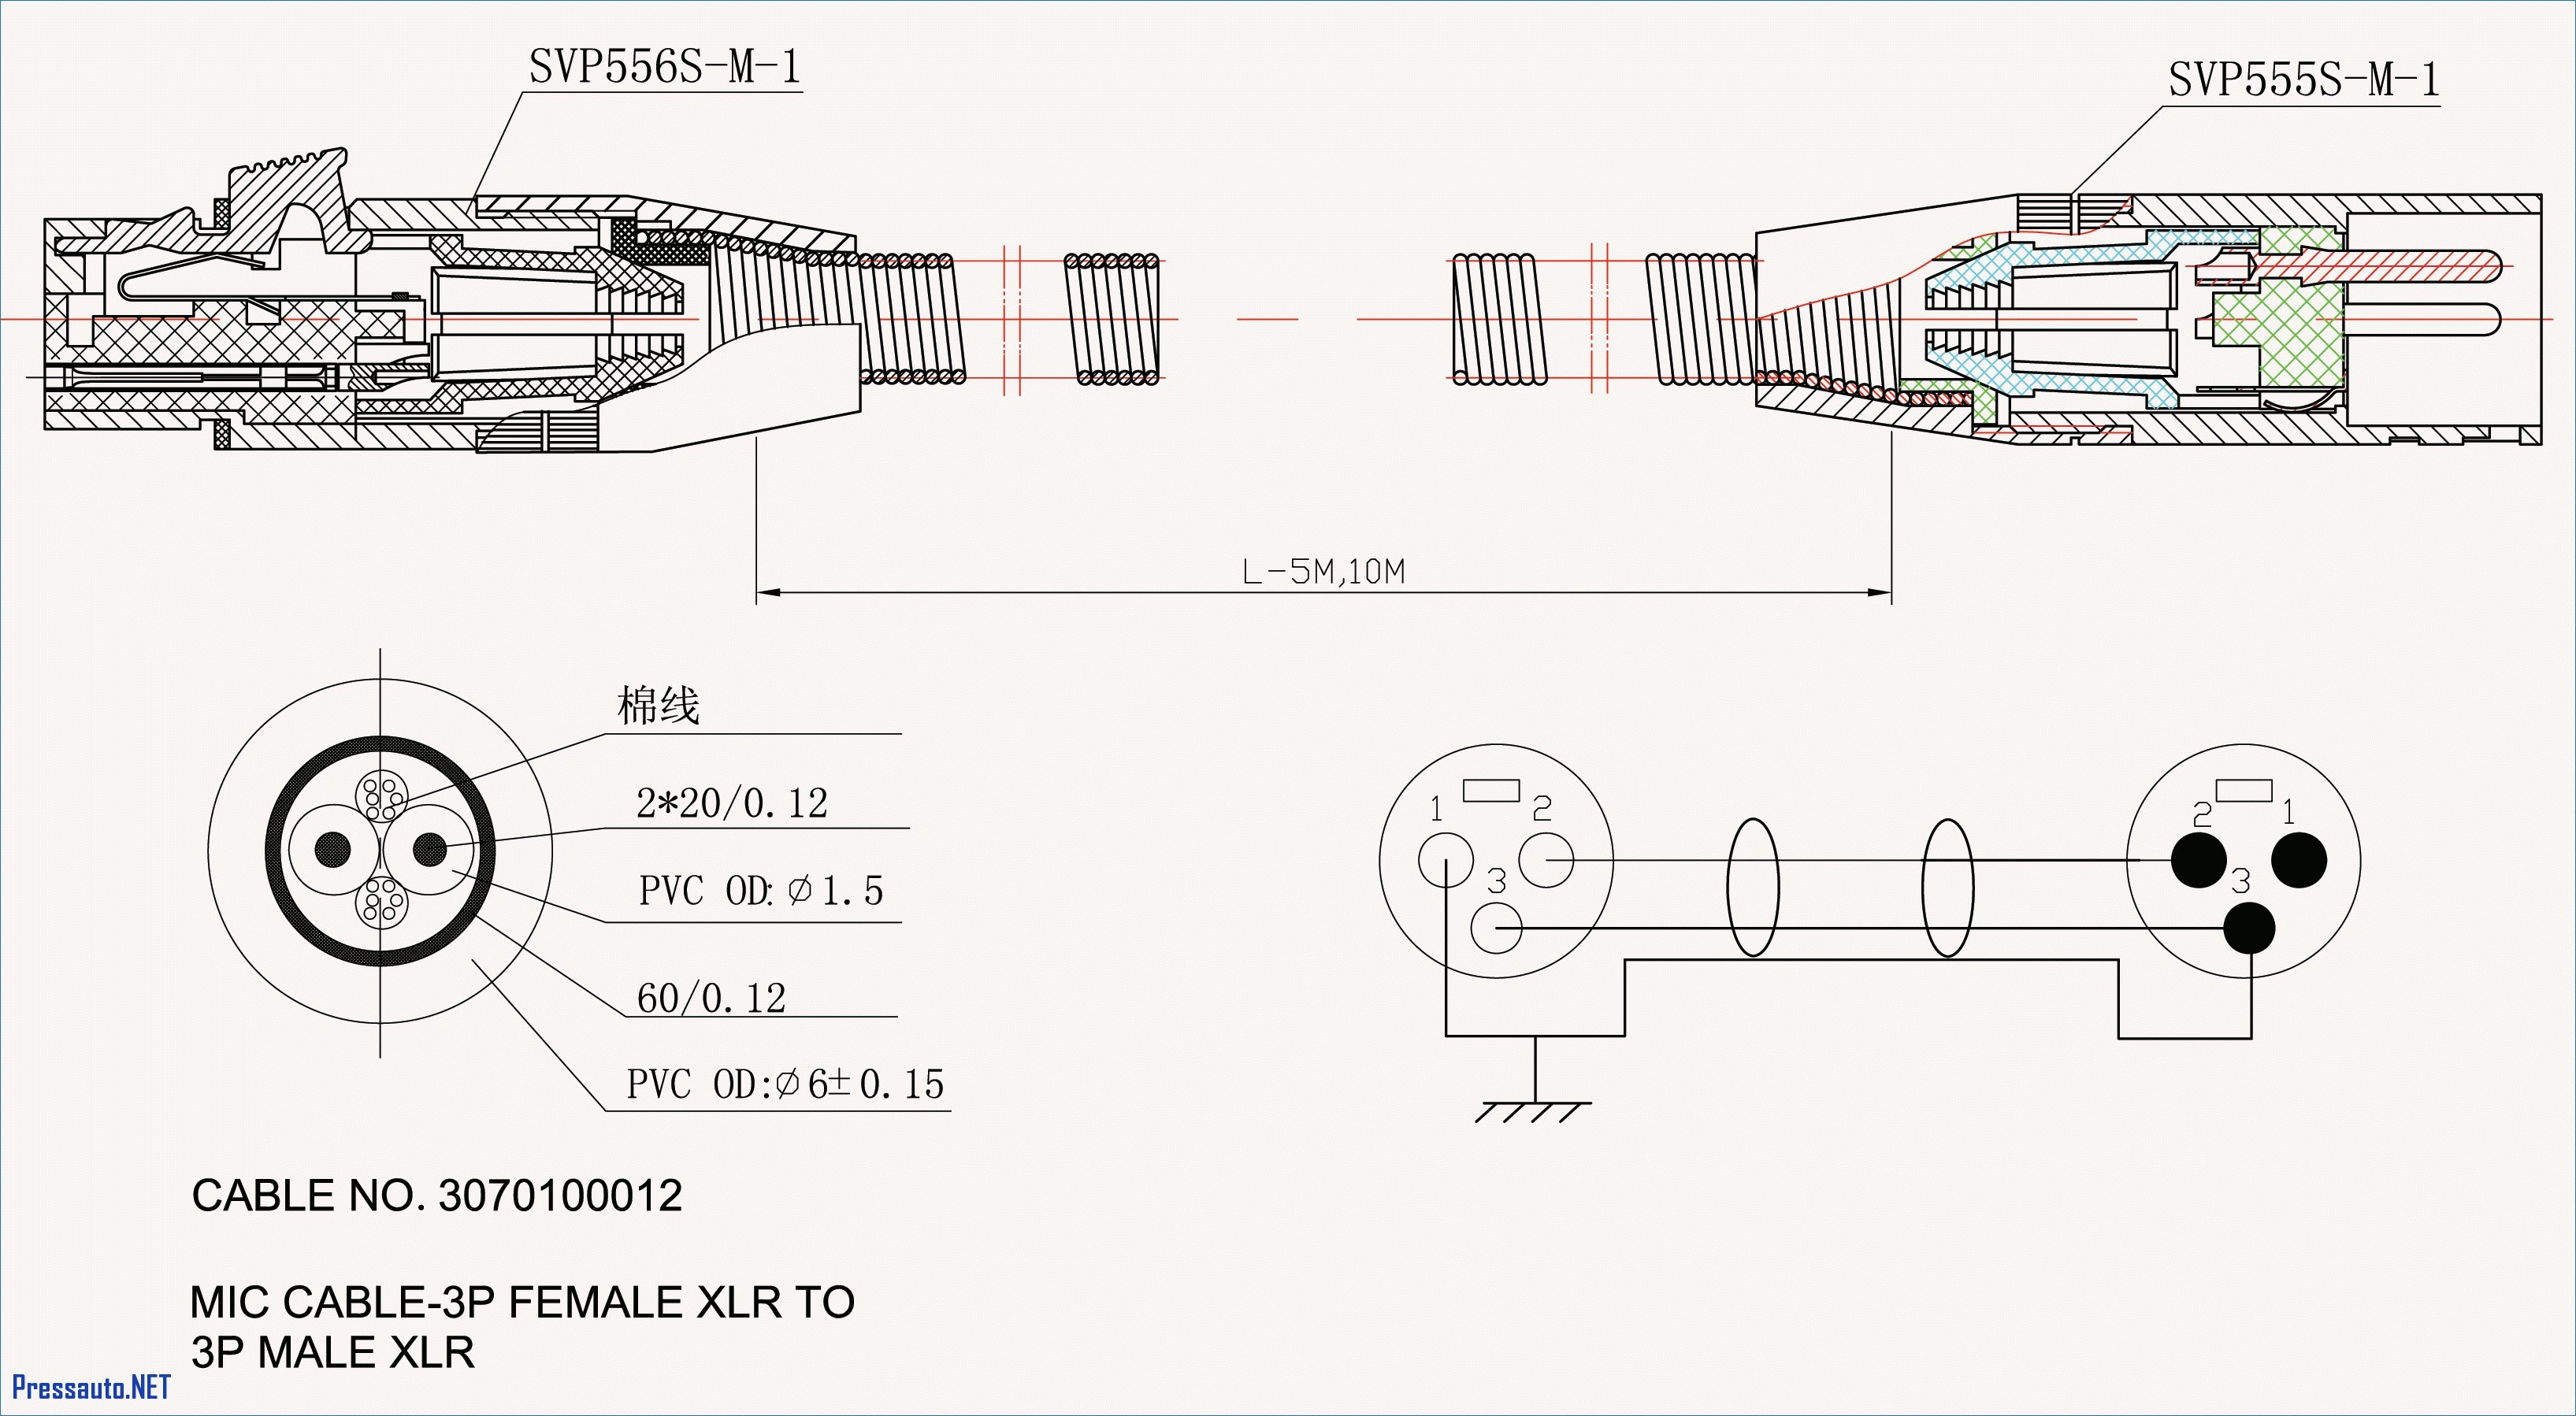 Wiring Diagram For Xlr New How To Wire An Outlet Diagram Best 3 Wire Microphone Wiring